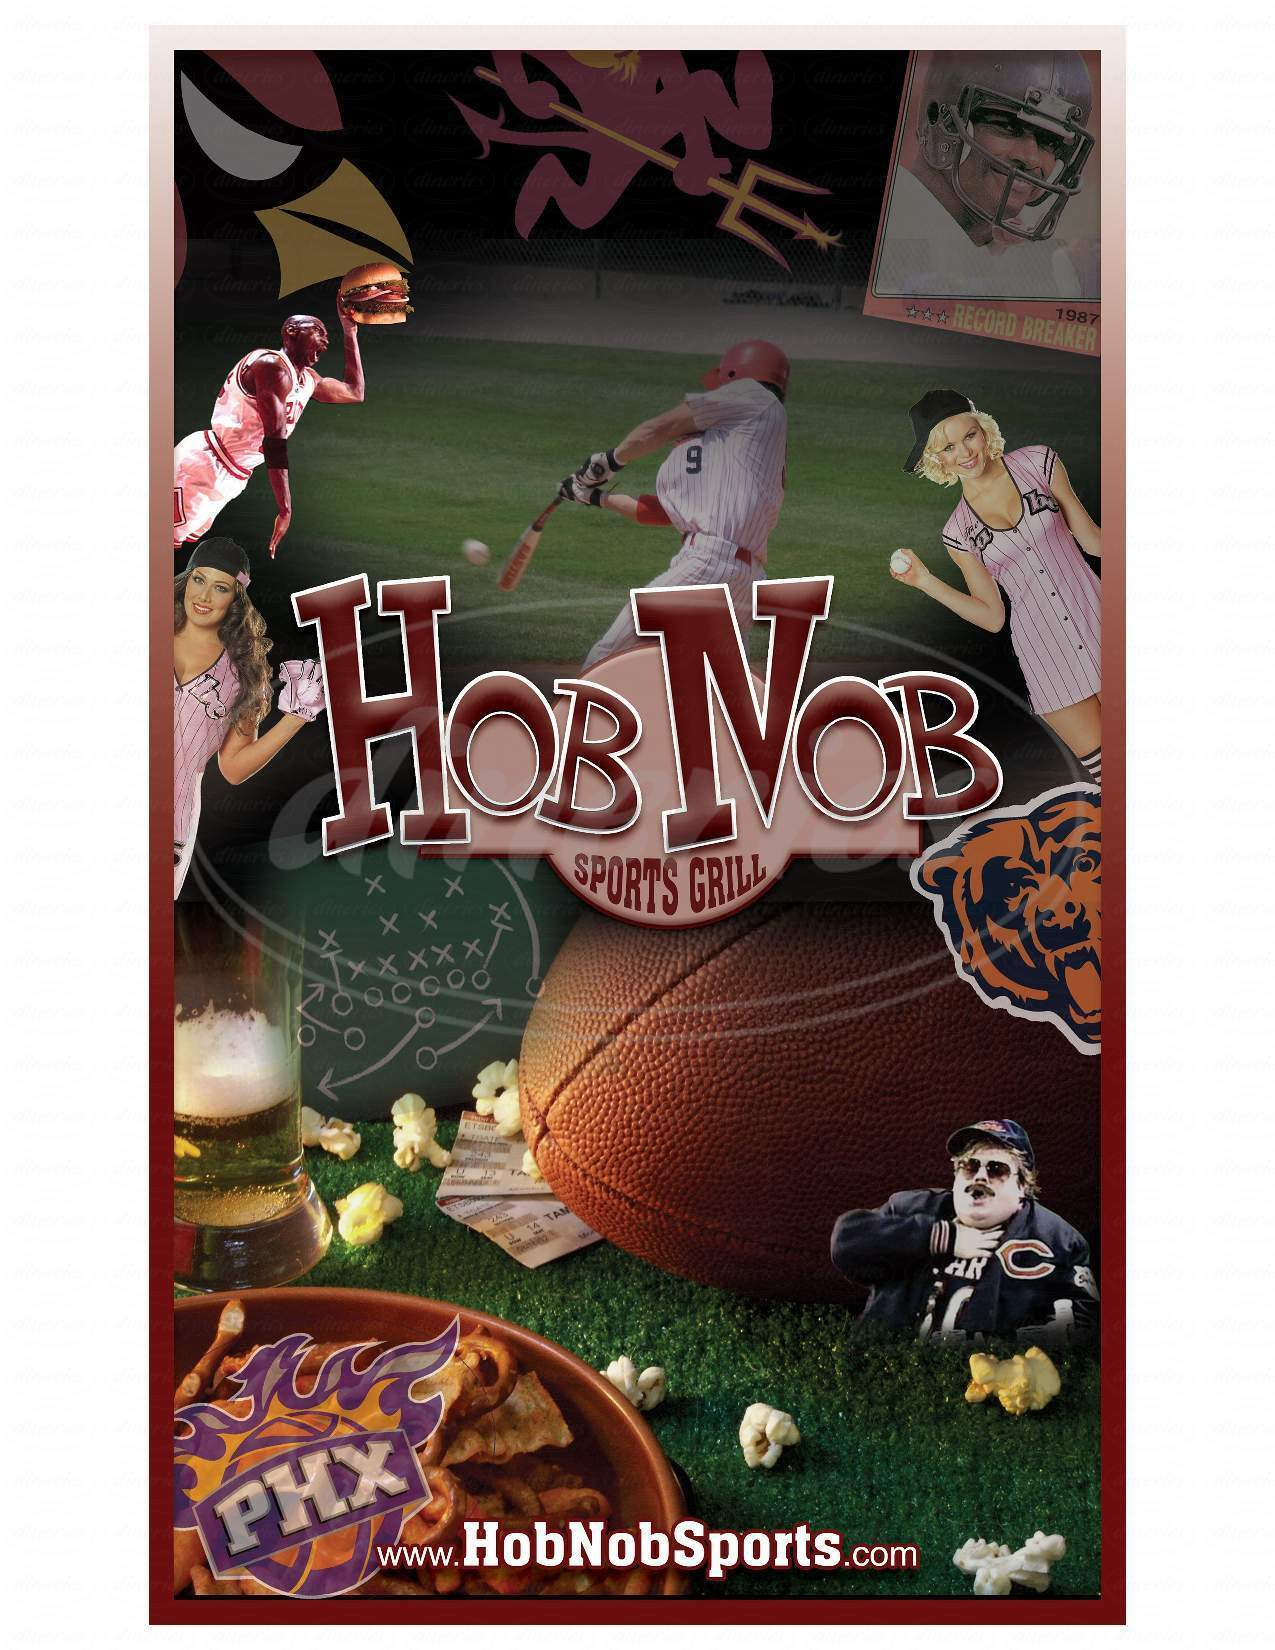 menu for Hob Nob Sports Grill